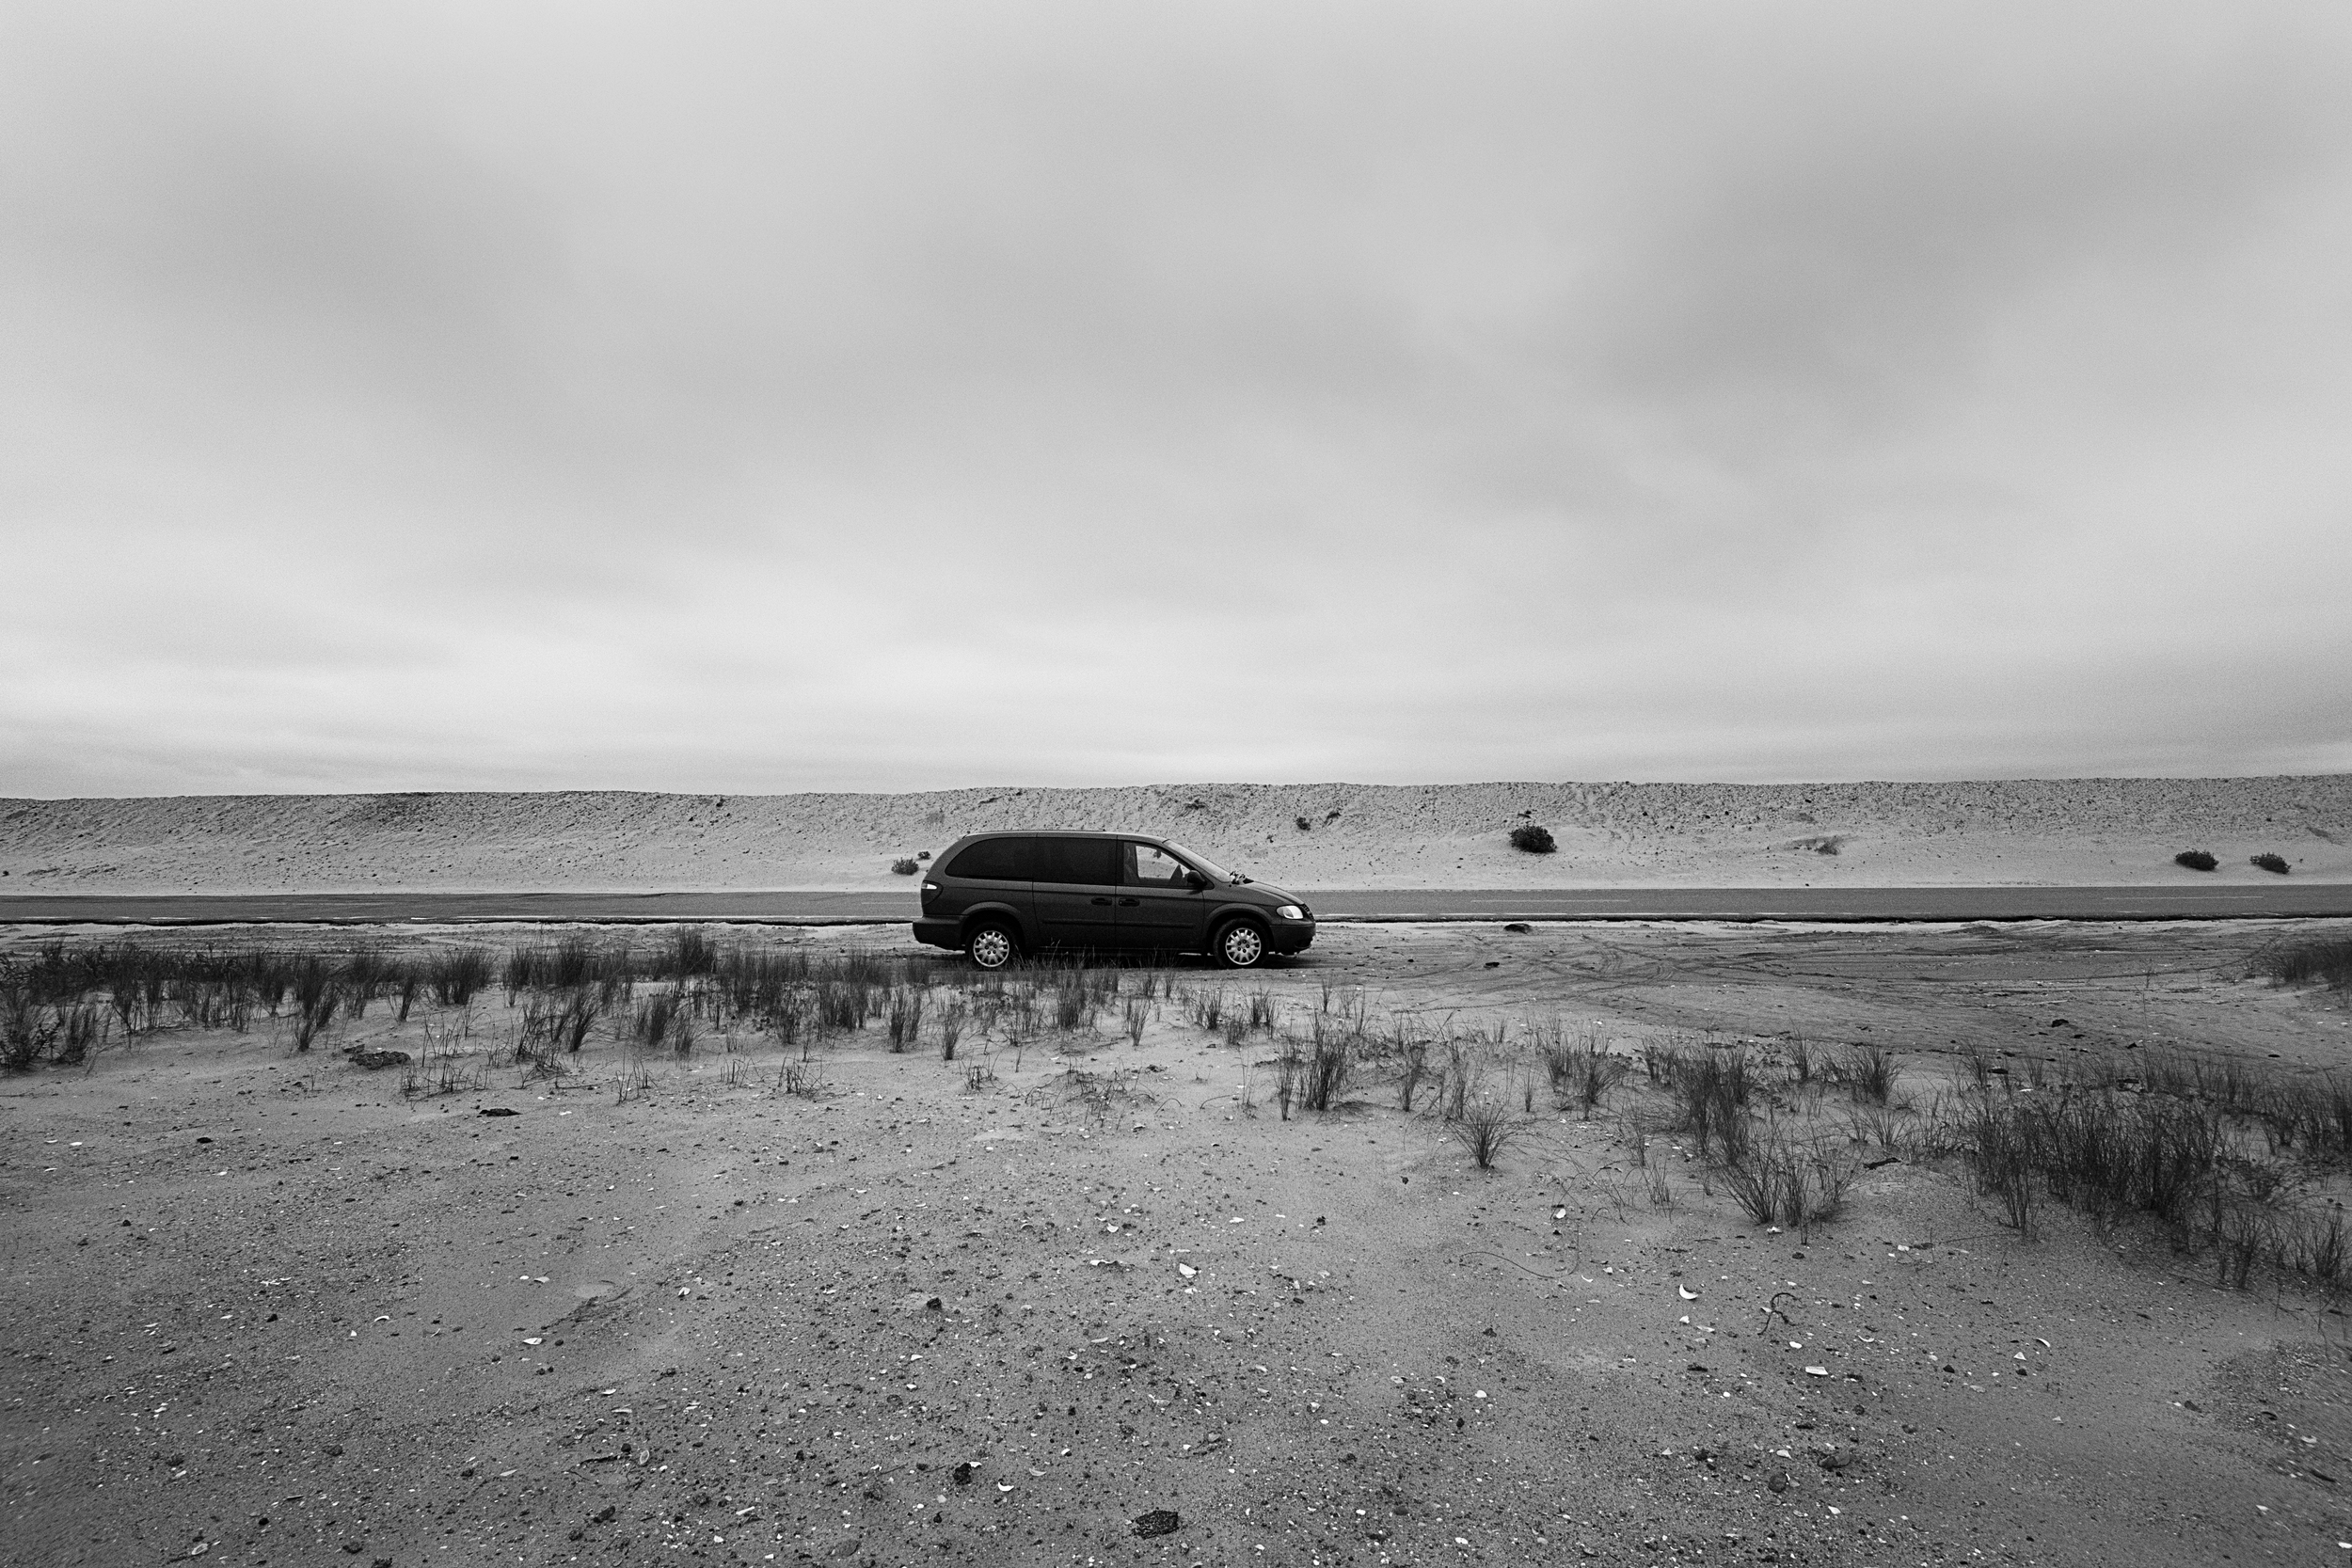 Almost got Rosy stuck in the sand. She's not the speediest or most powerful thing on the road.